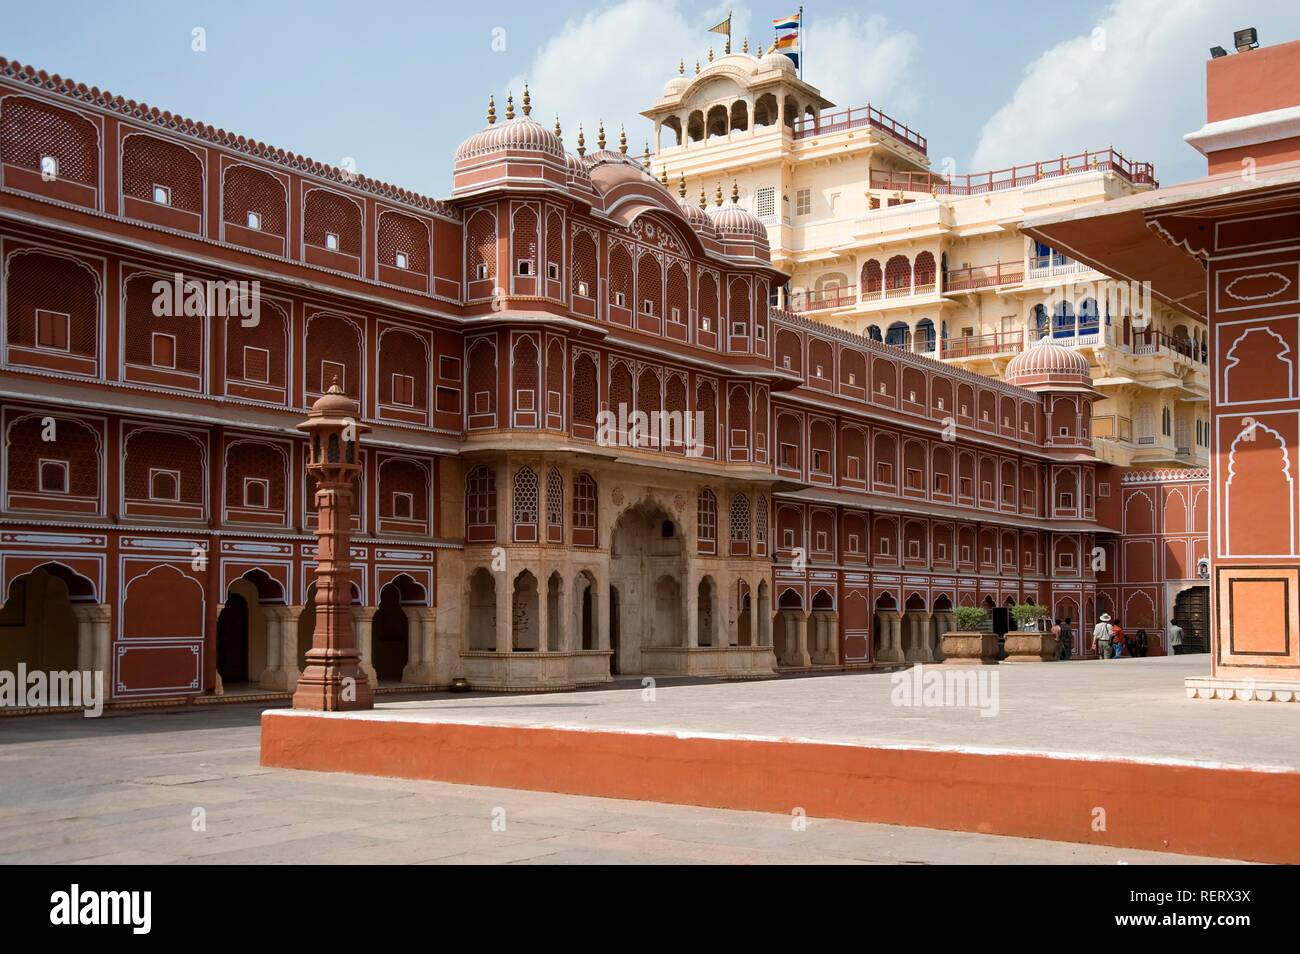 Jaipur, City Palace of Jai Singh II, Inner courtyard with the Riddhi-Siddhi Pol and the Chandra Mahal Palace at back, Rajasthan - Stock Image